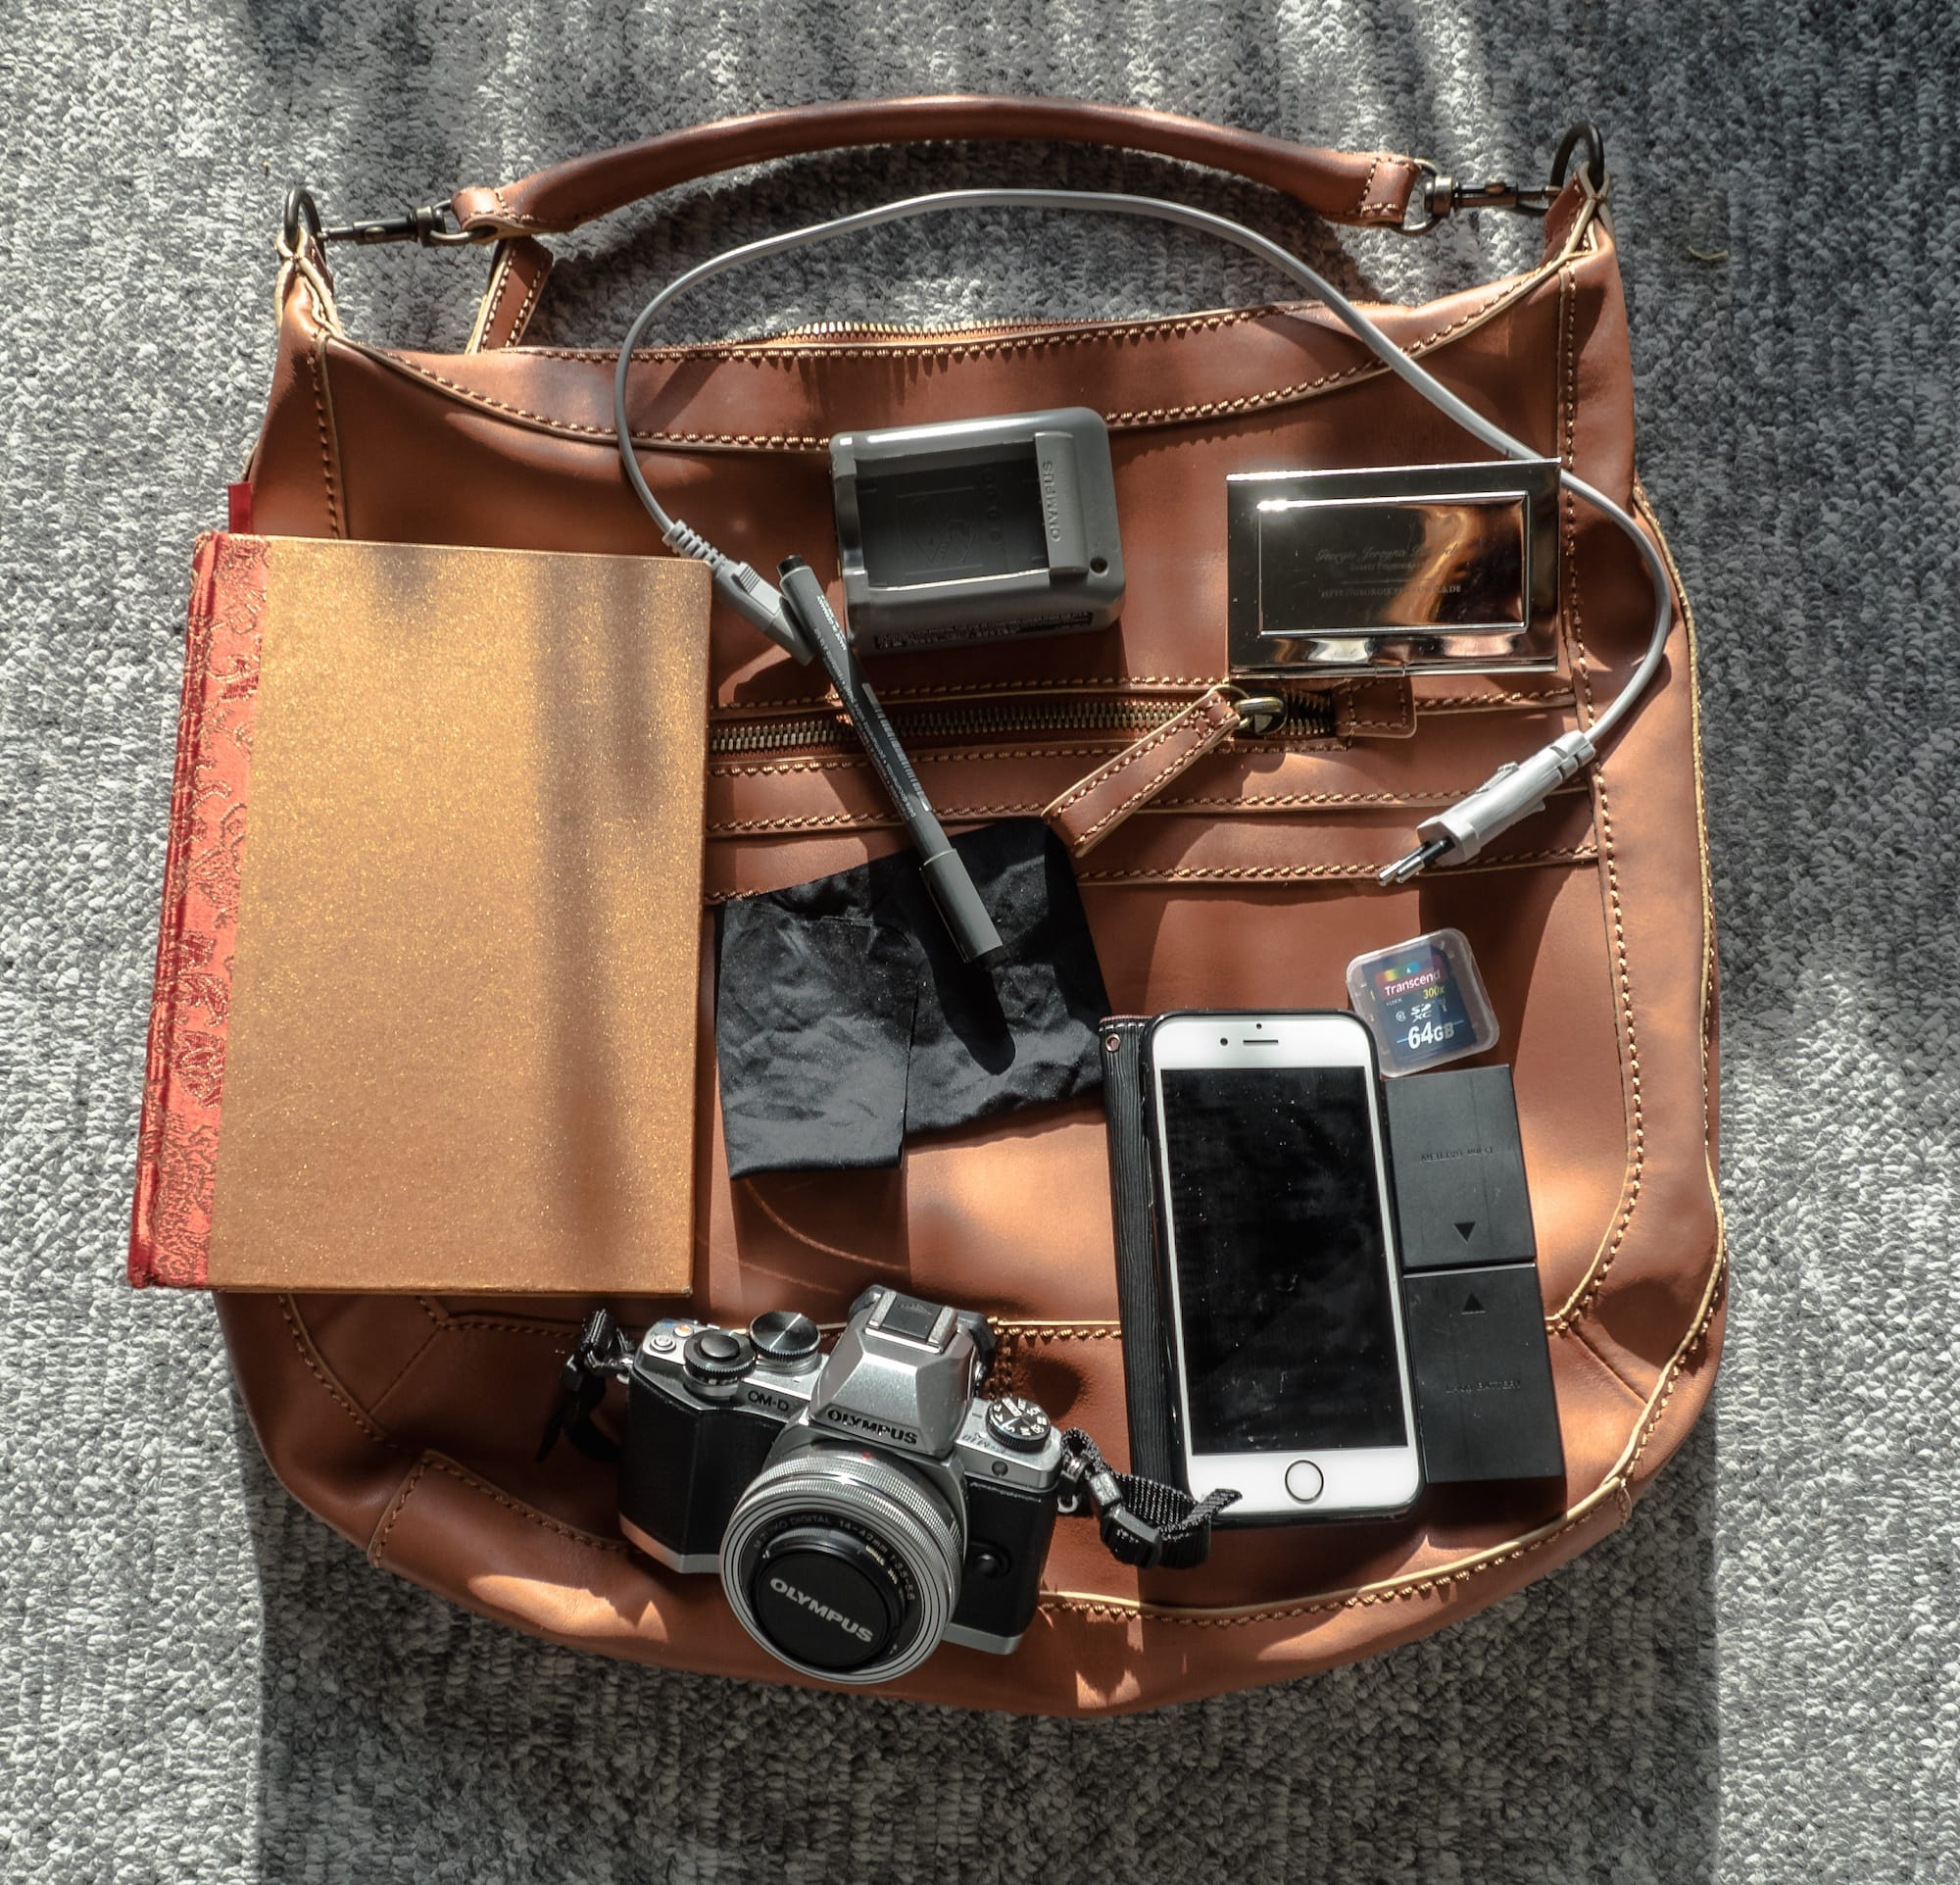 Inside Georgie Pauwels' Camera Bag